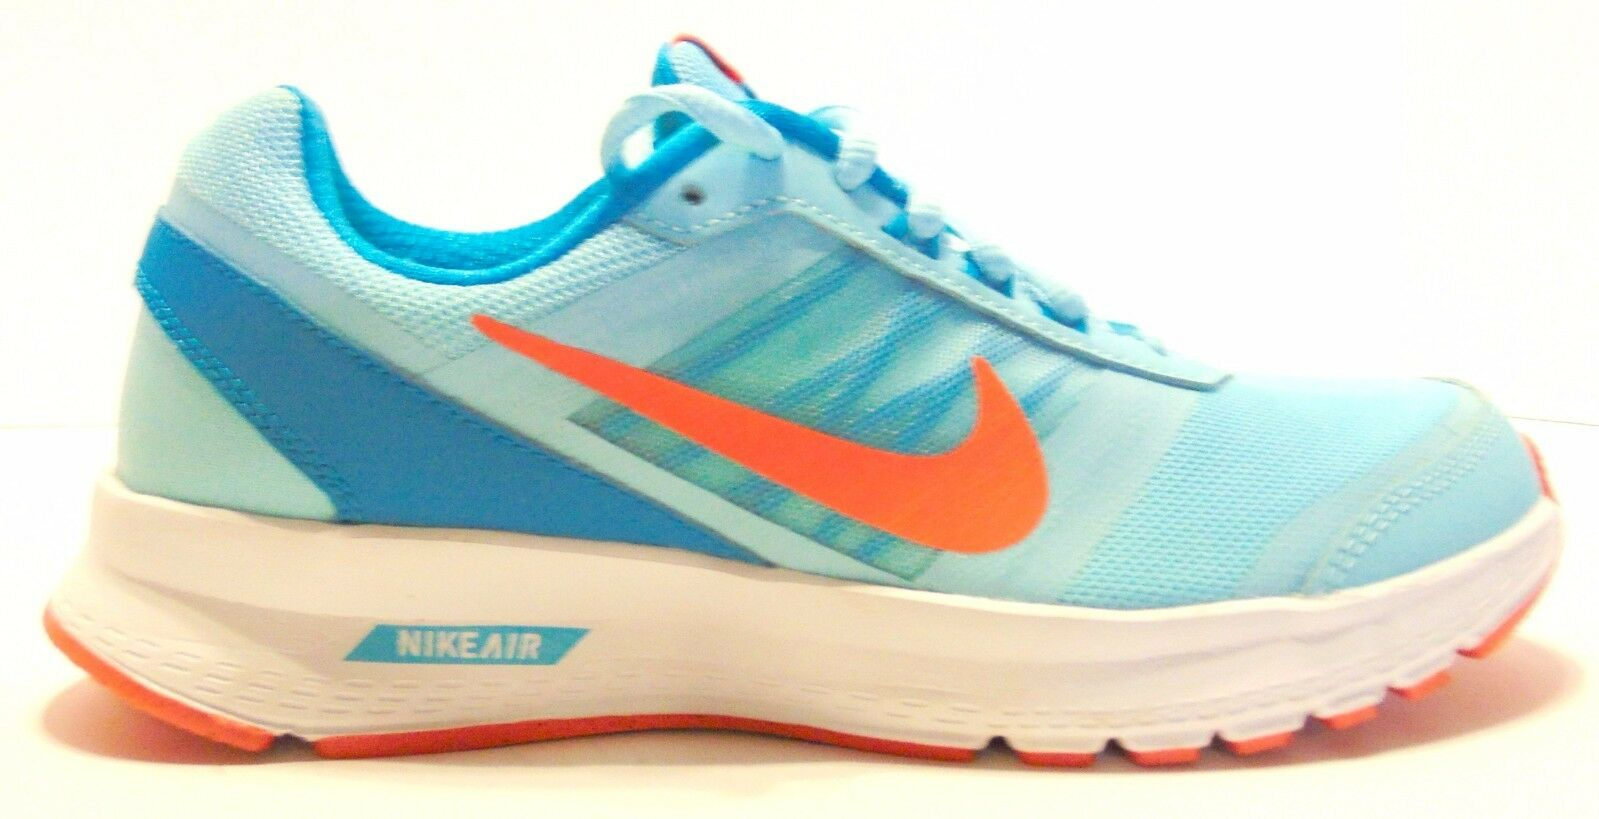 Nike air implacabile 5 donne scarpe da corsa copa / iper - arancio / blu / bianco